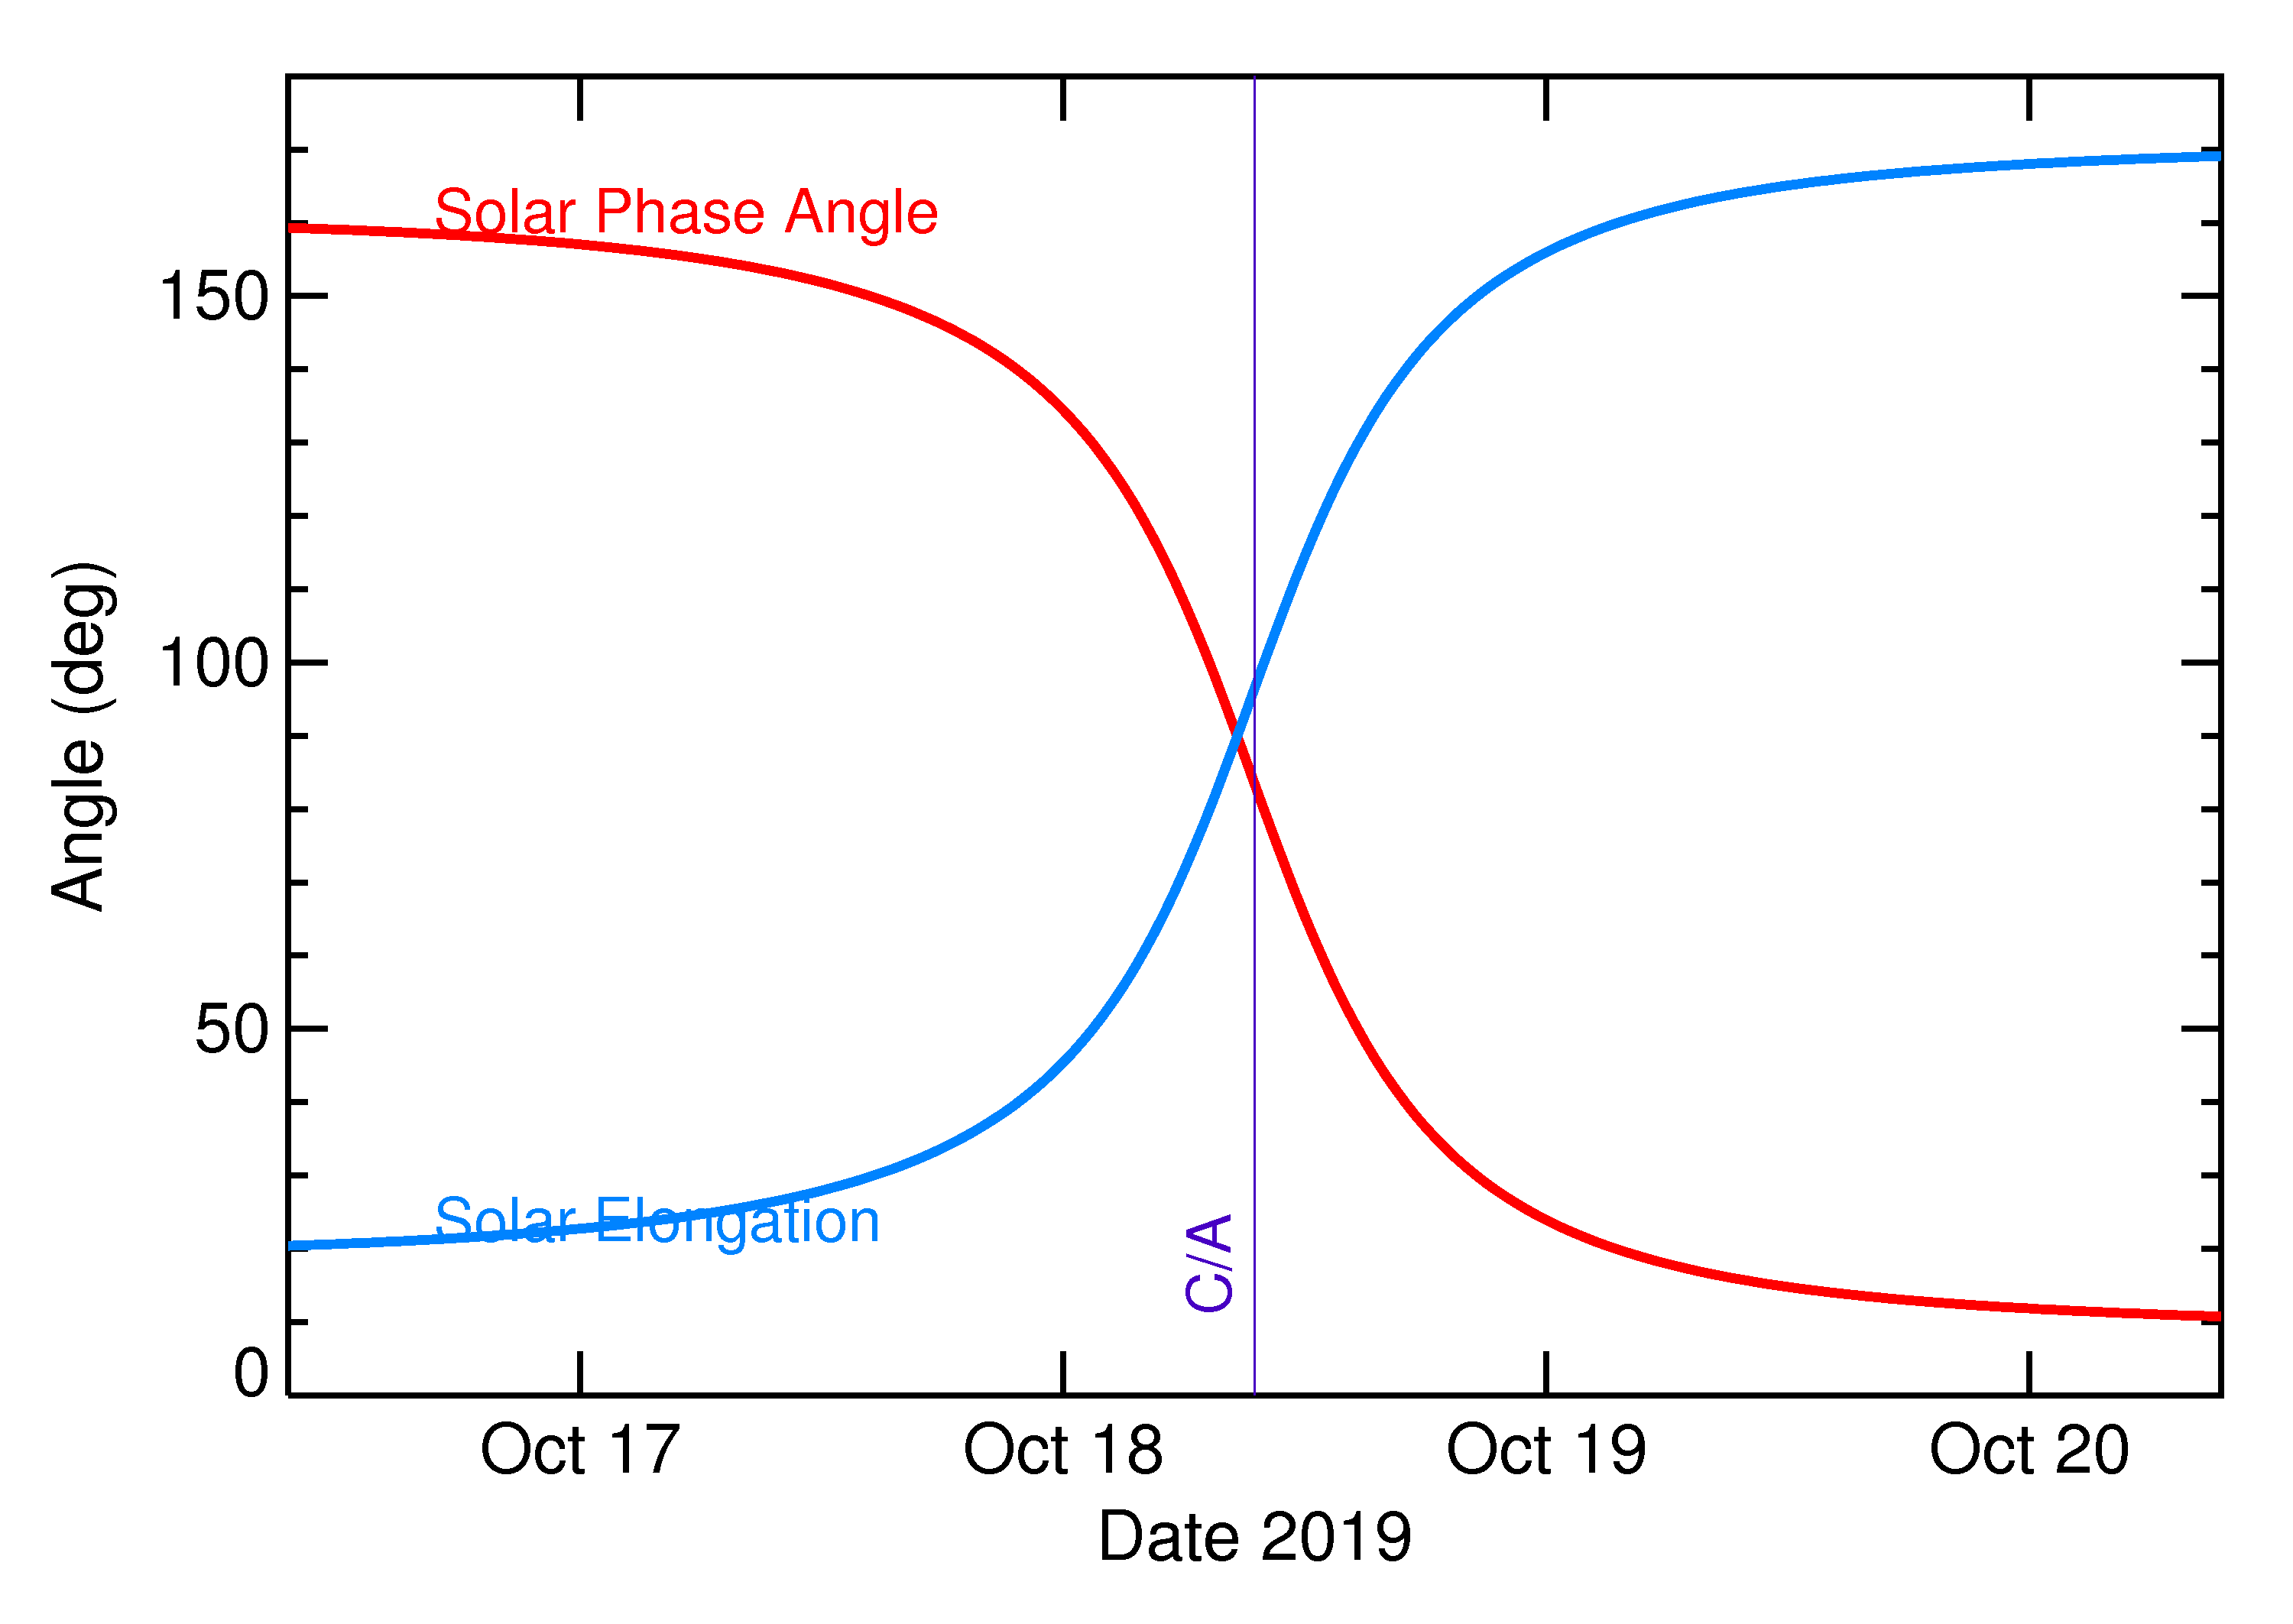 Solar Elongation and Solar Phase Angle of 2019 UG in the days around closest approach